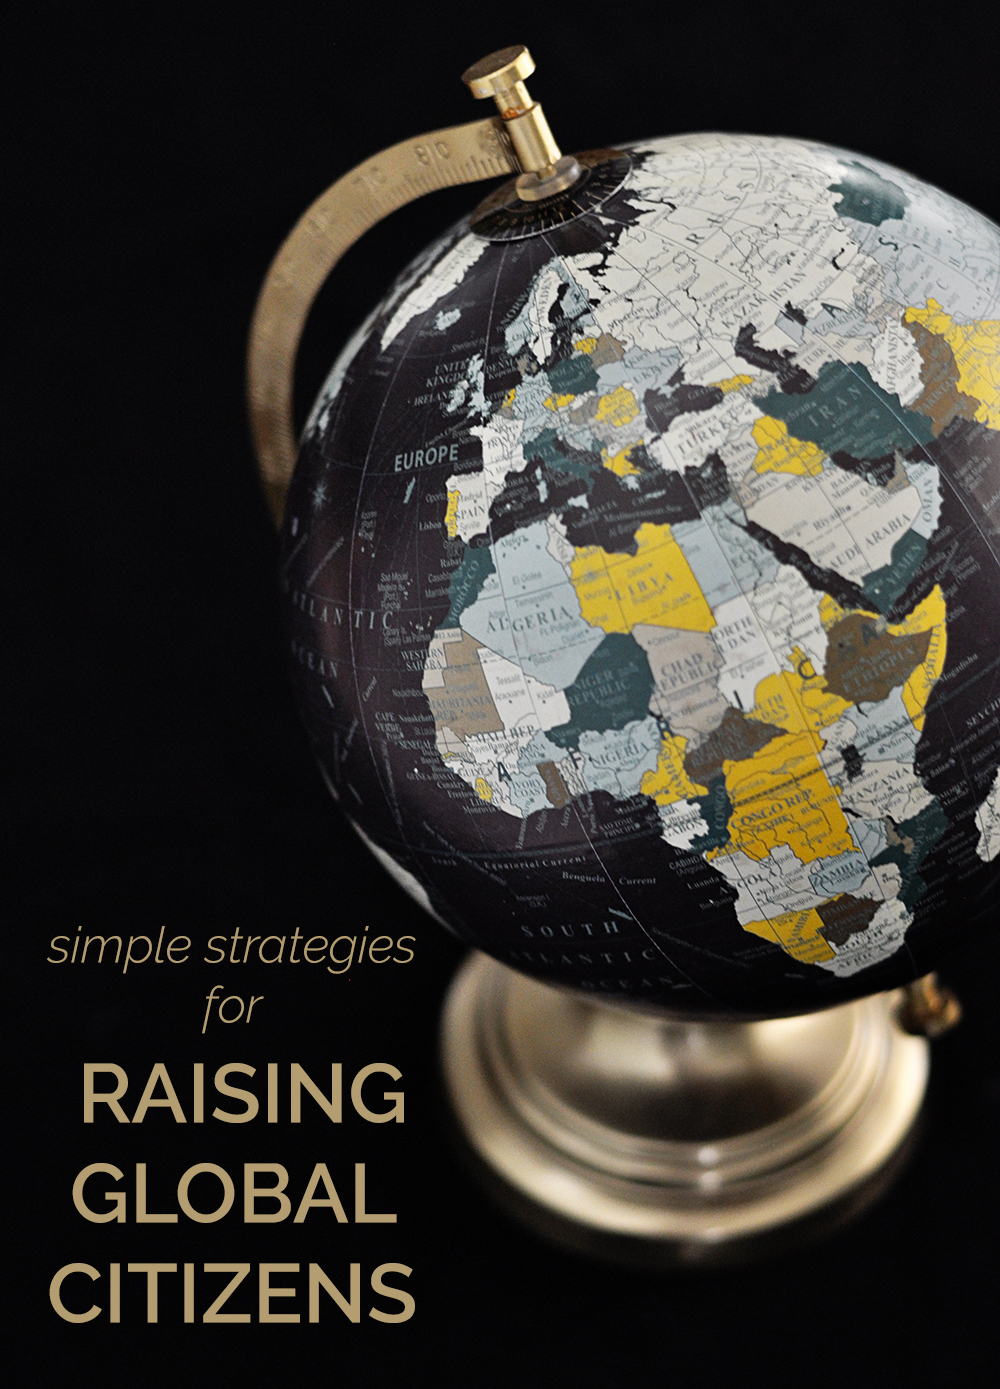 Simple strategies for raising global citizens with Emergen-C